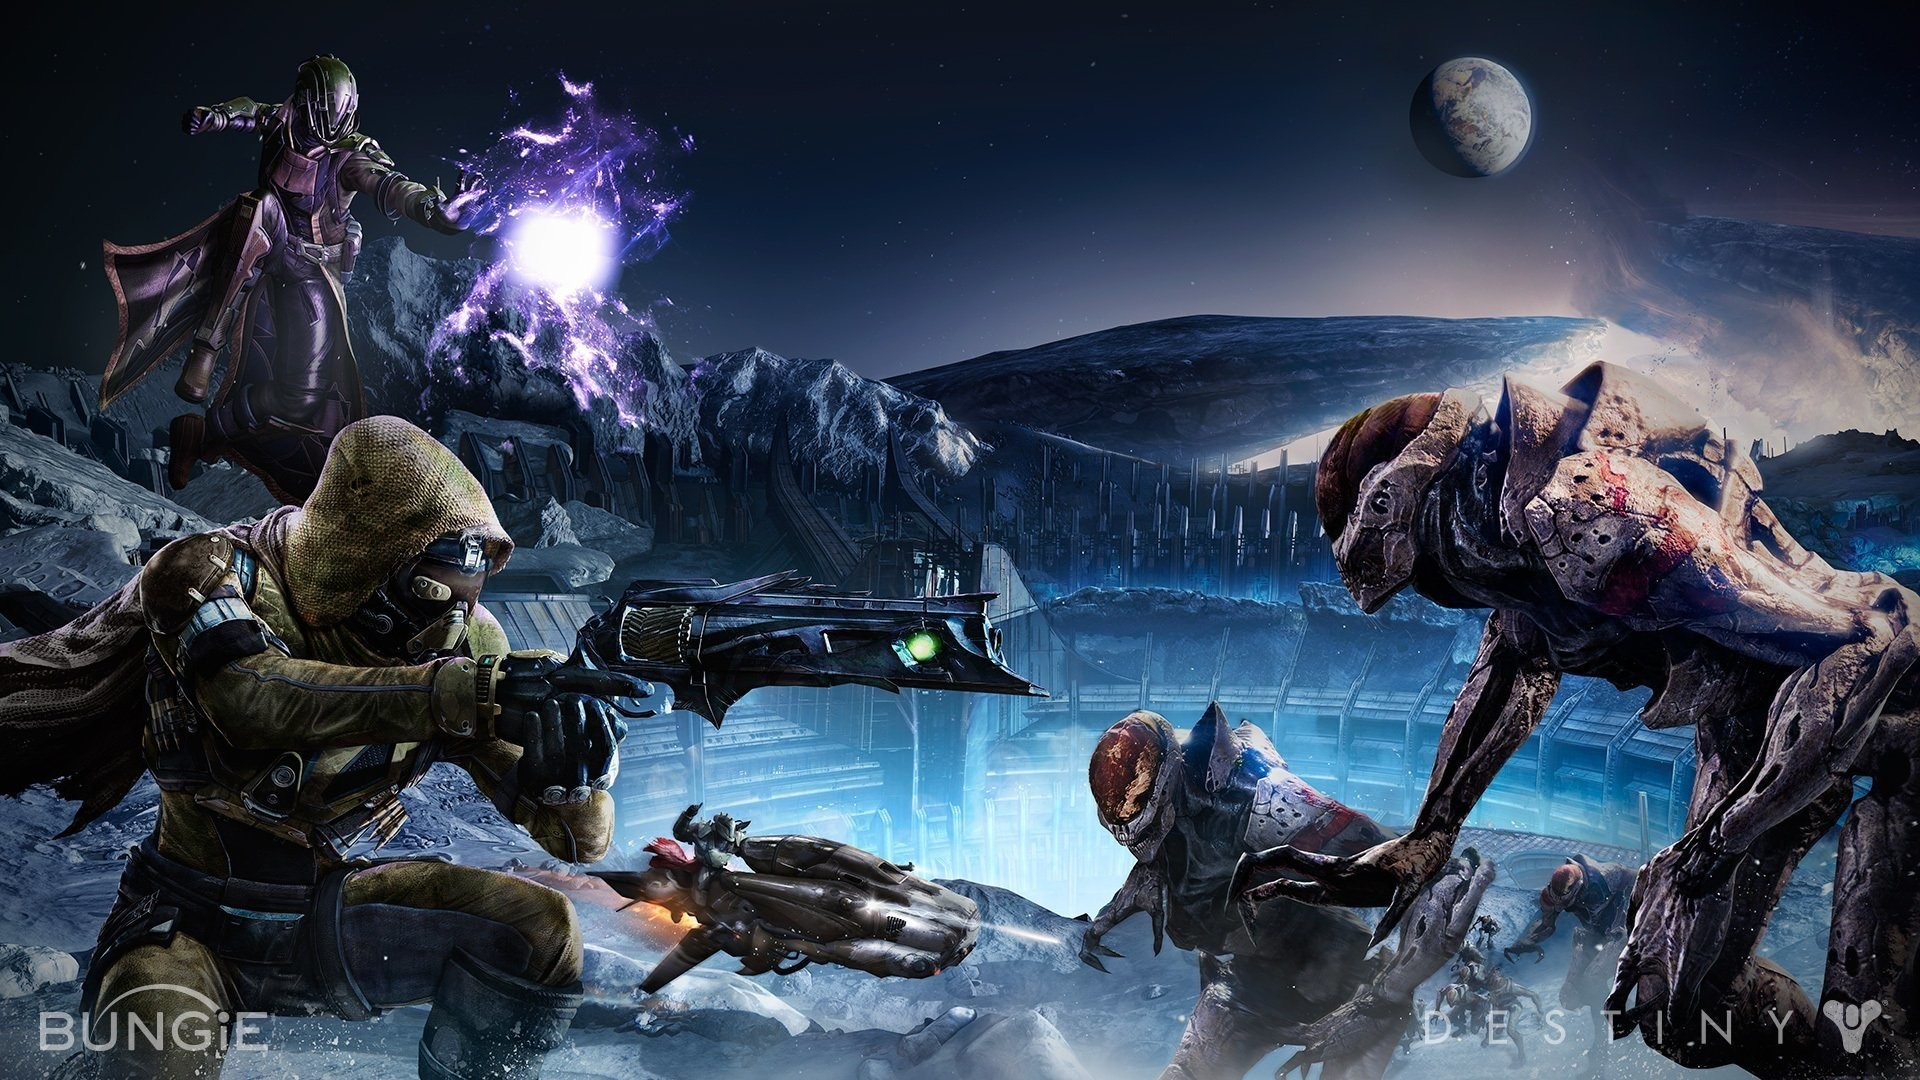 Hd Destiny Wallpapers 77 Images